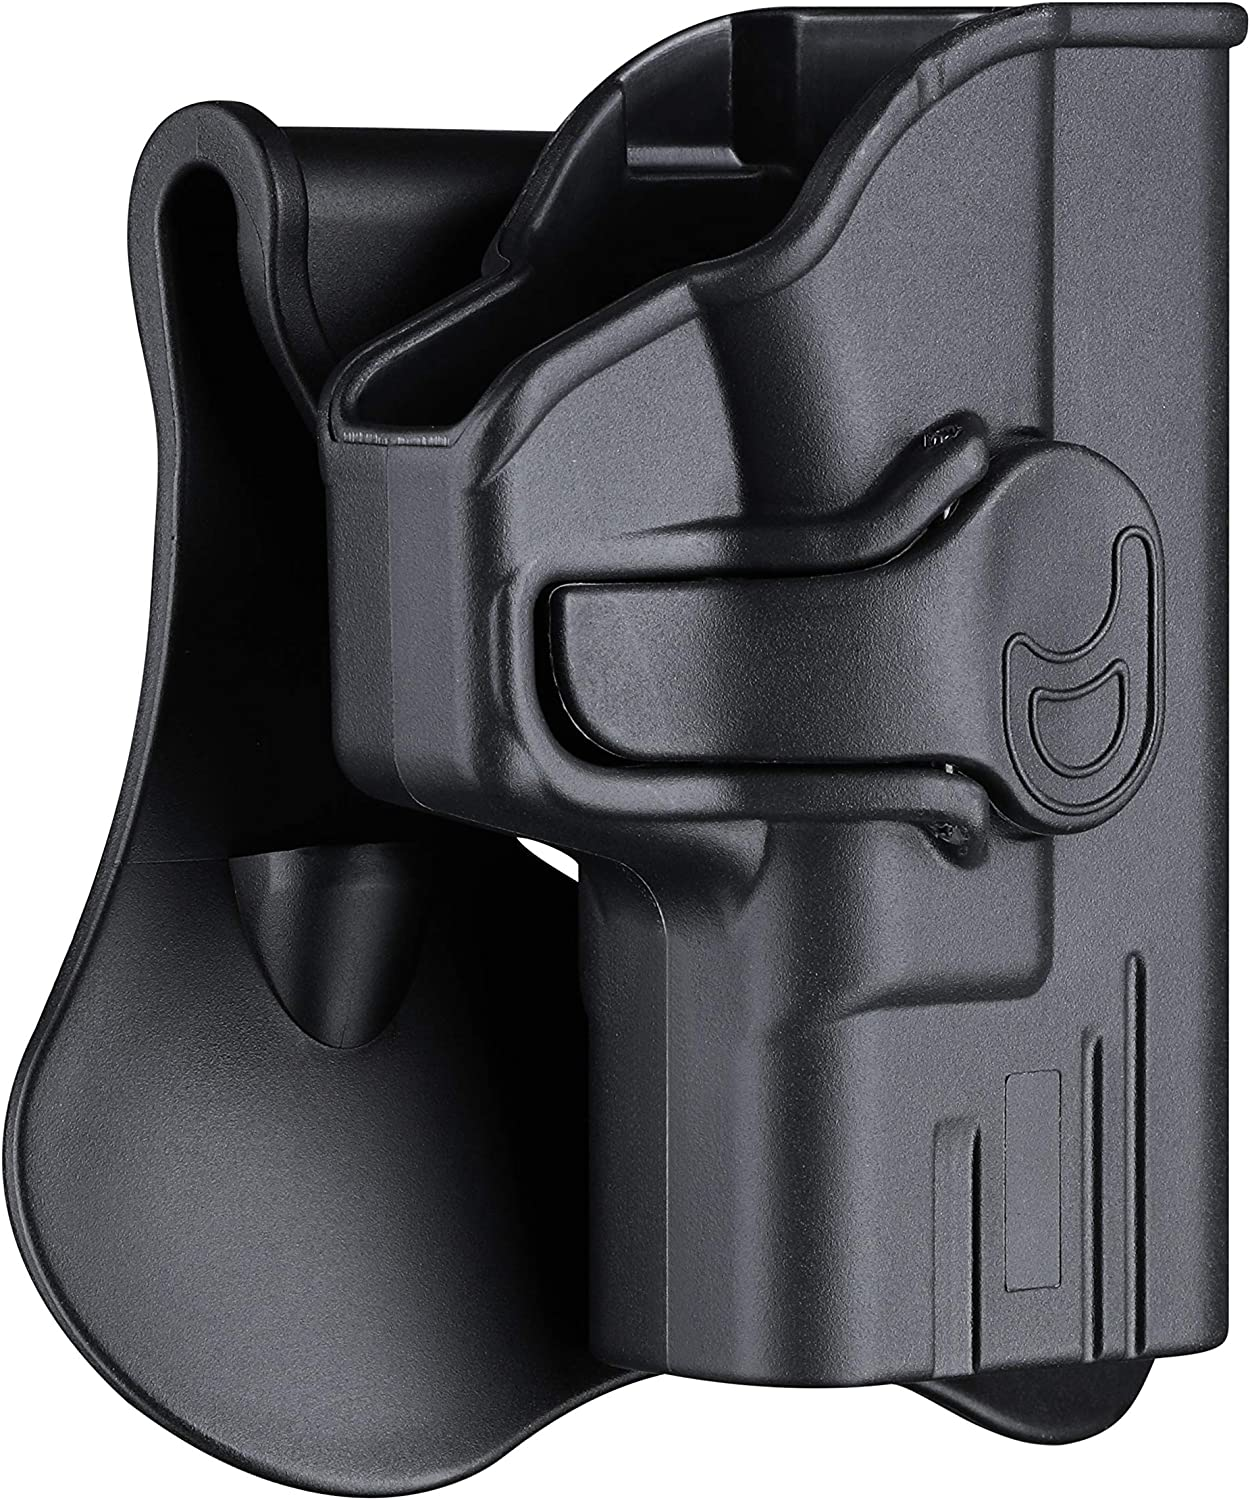 XD-S 3.3 Compact Holsters, OWB Holster for Springfield Armory XD-S 9mm/.40/.45